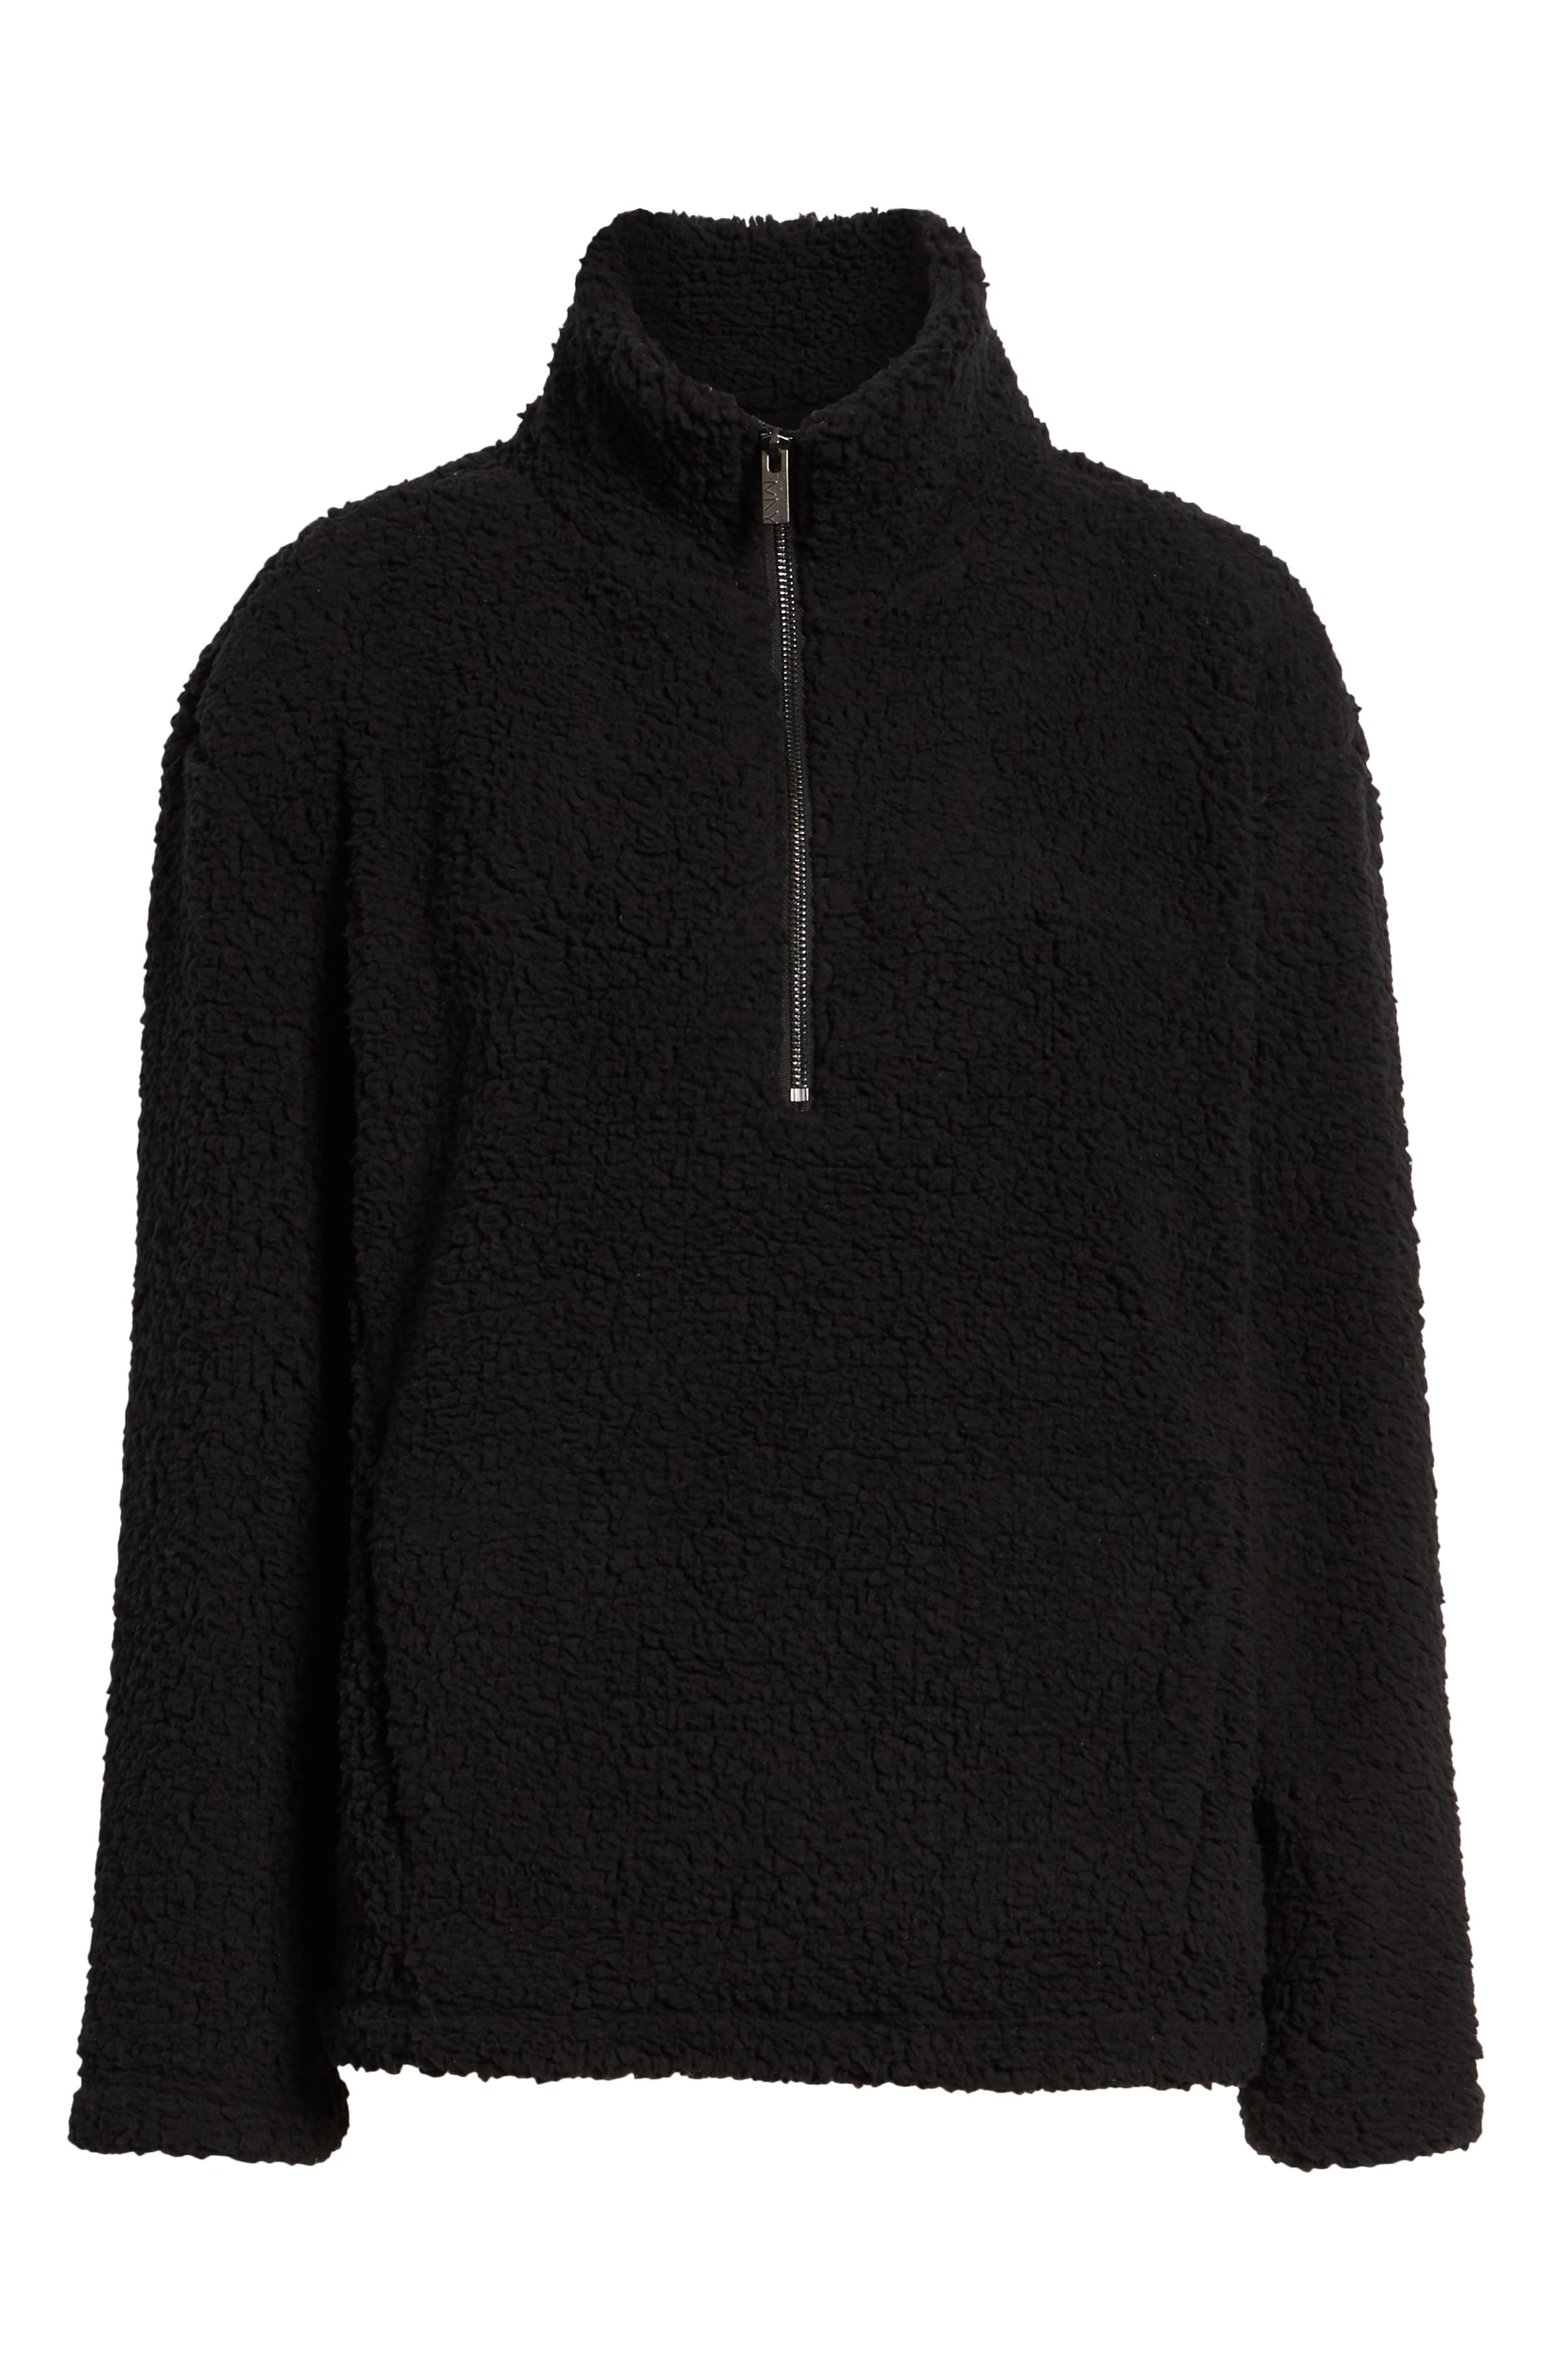 MARC NEW YORK, Teddy Faux Shearling Quarter Zip Jacket, Alternate thumbnail 6, color, BLACK